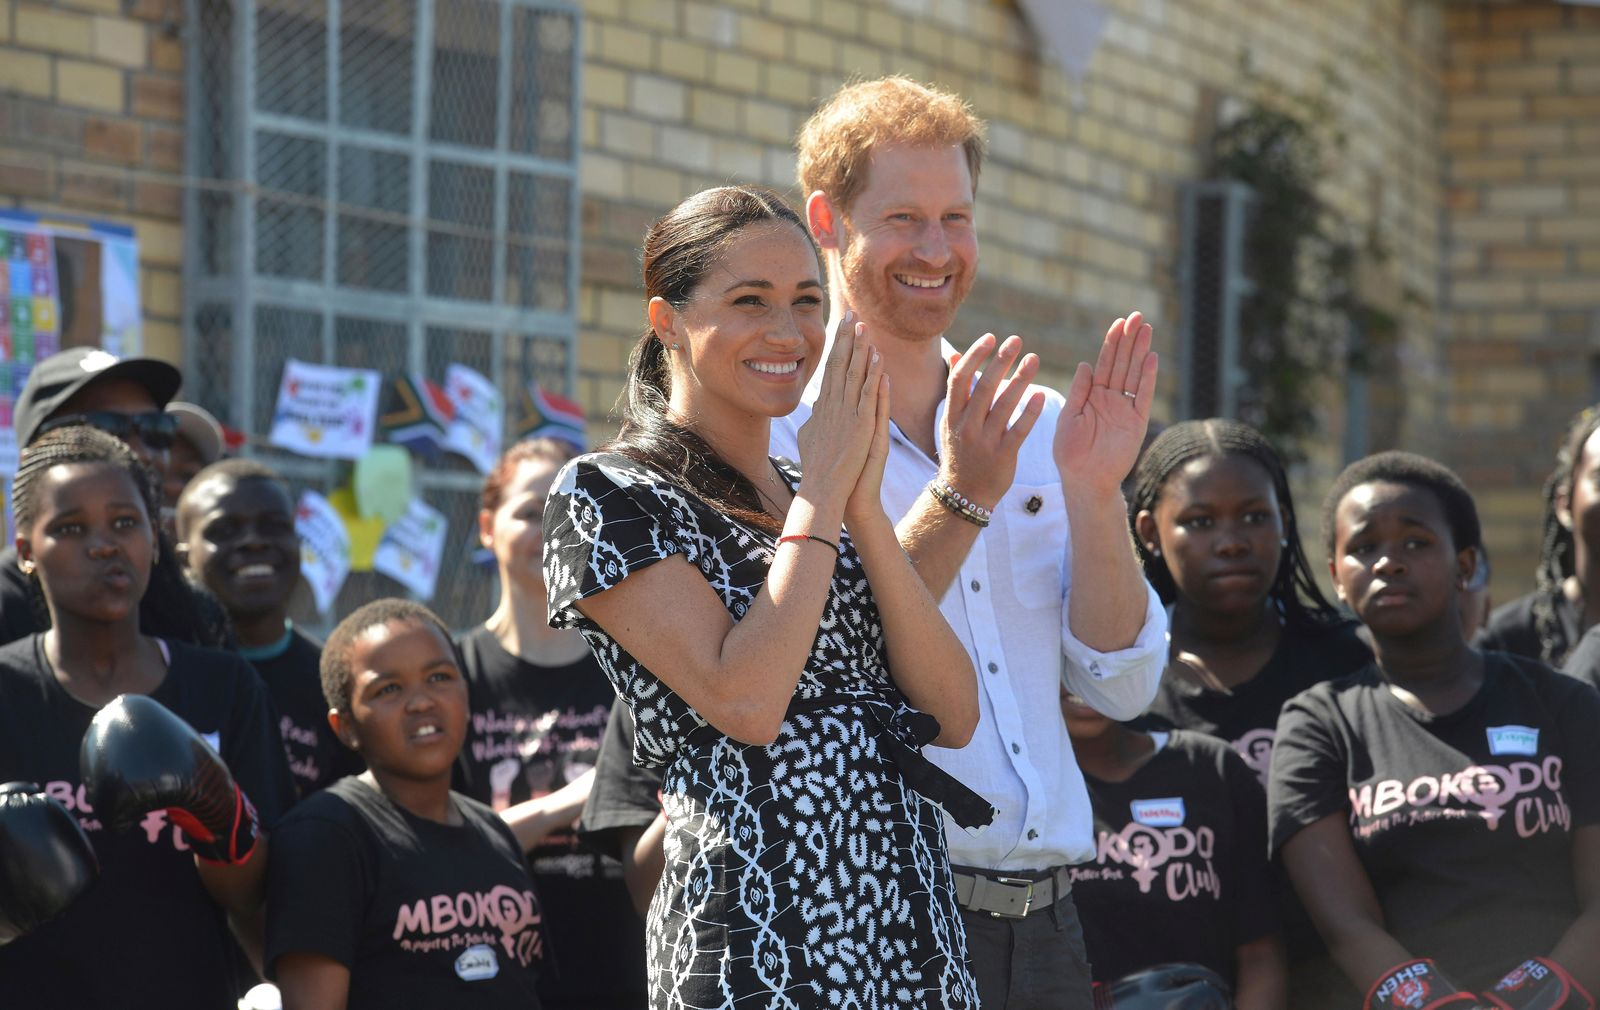 FILE - In this Monday, Sept, 23, 2019 file photo, Britain's Prince Harry and Meghan, Duchess of Sussex greet youths on a visit to the Nyanga Methodist Church in Cape Town, South Africa. (Courtney Africa/Pool via AP, File)